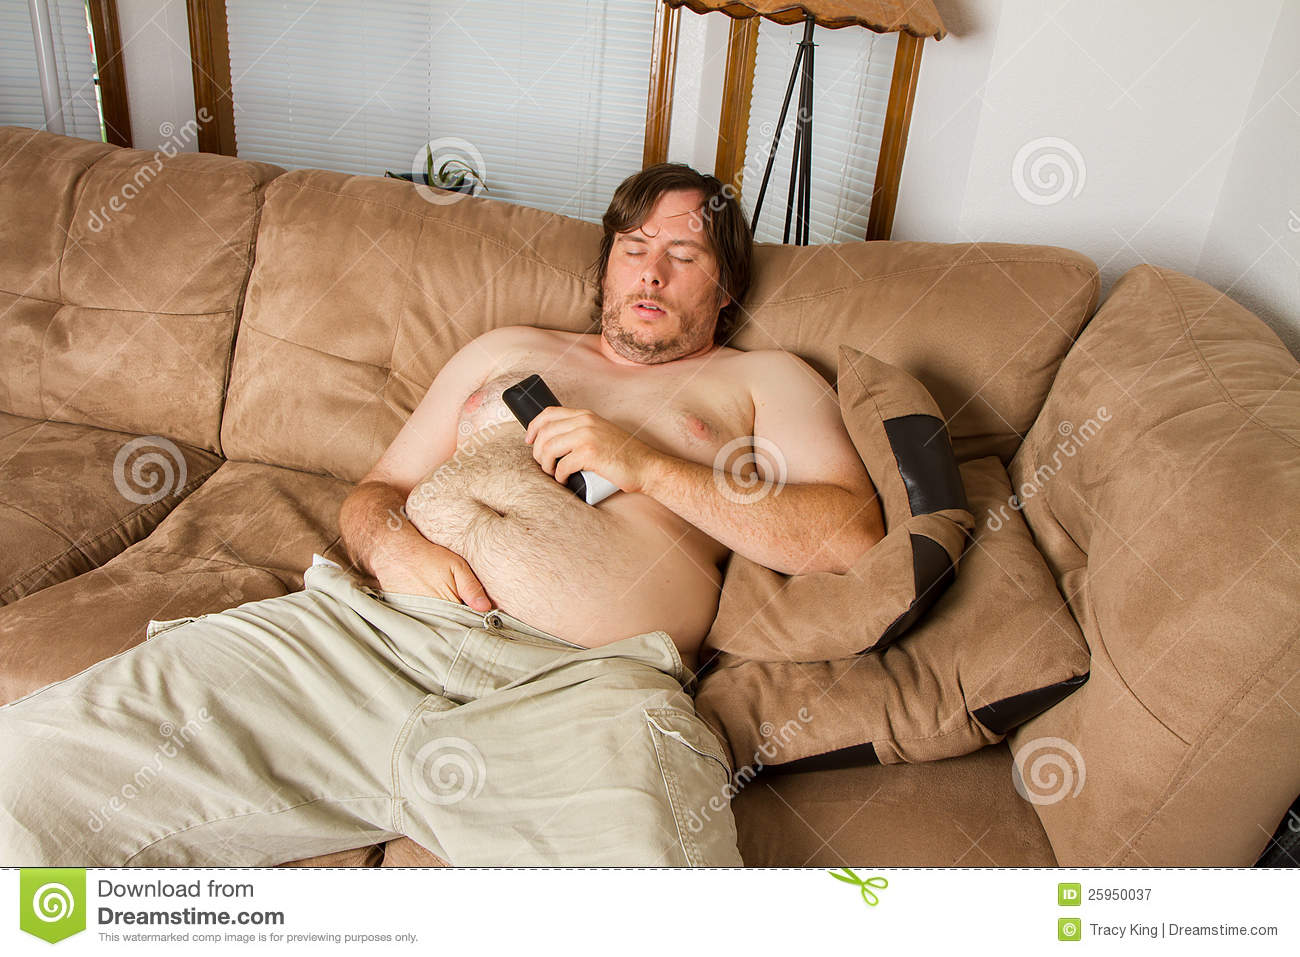 Fat wife naked on couch